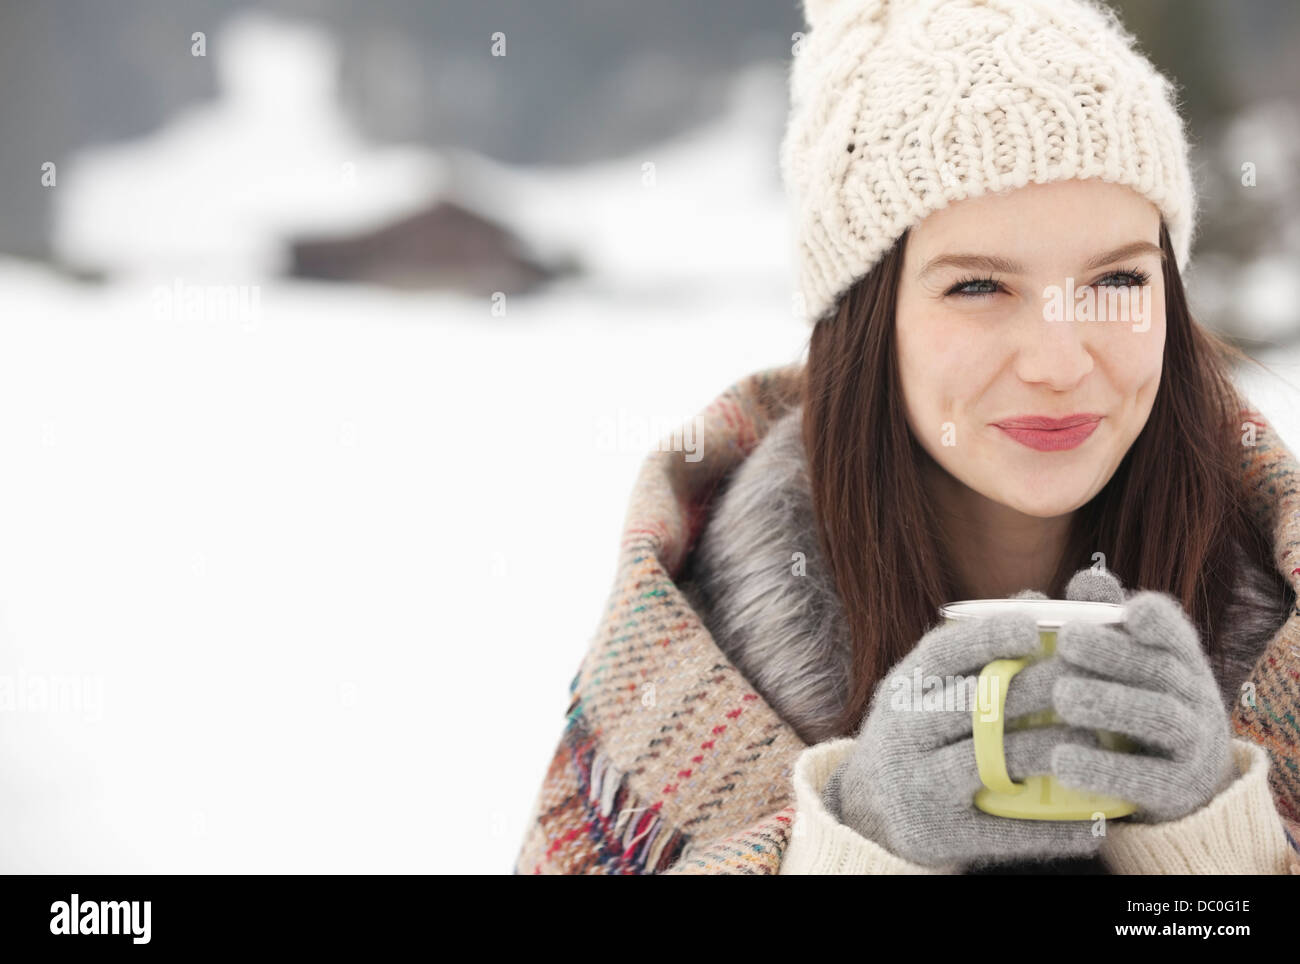 Close up of smiling woman in knit hat and gloves drinking coffee in snowy field - Stock Image